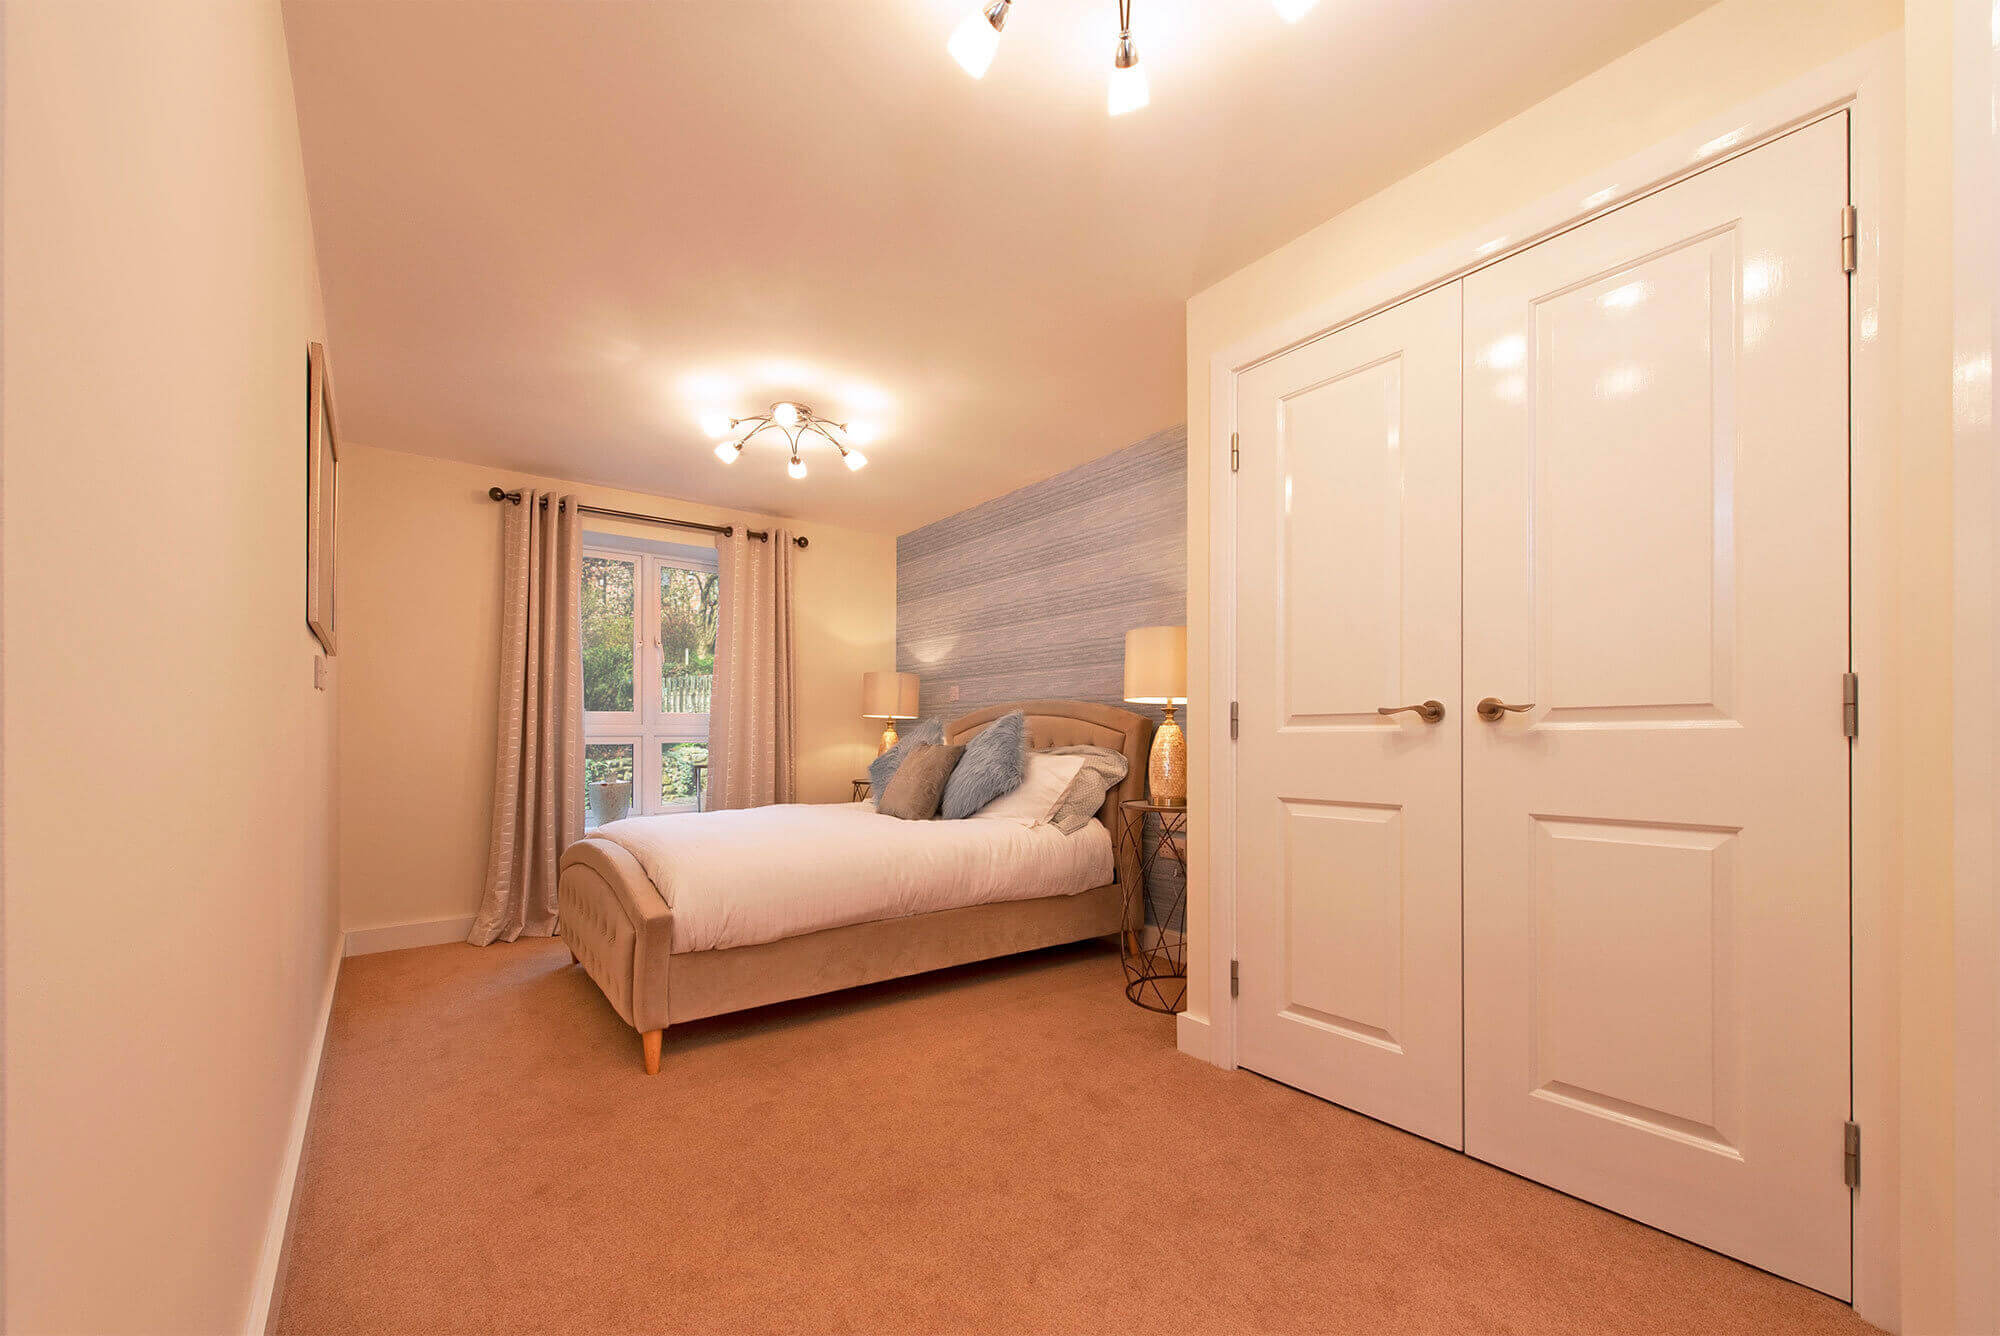 Show Apartment Macclesfield